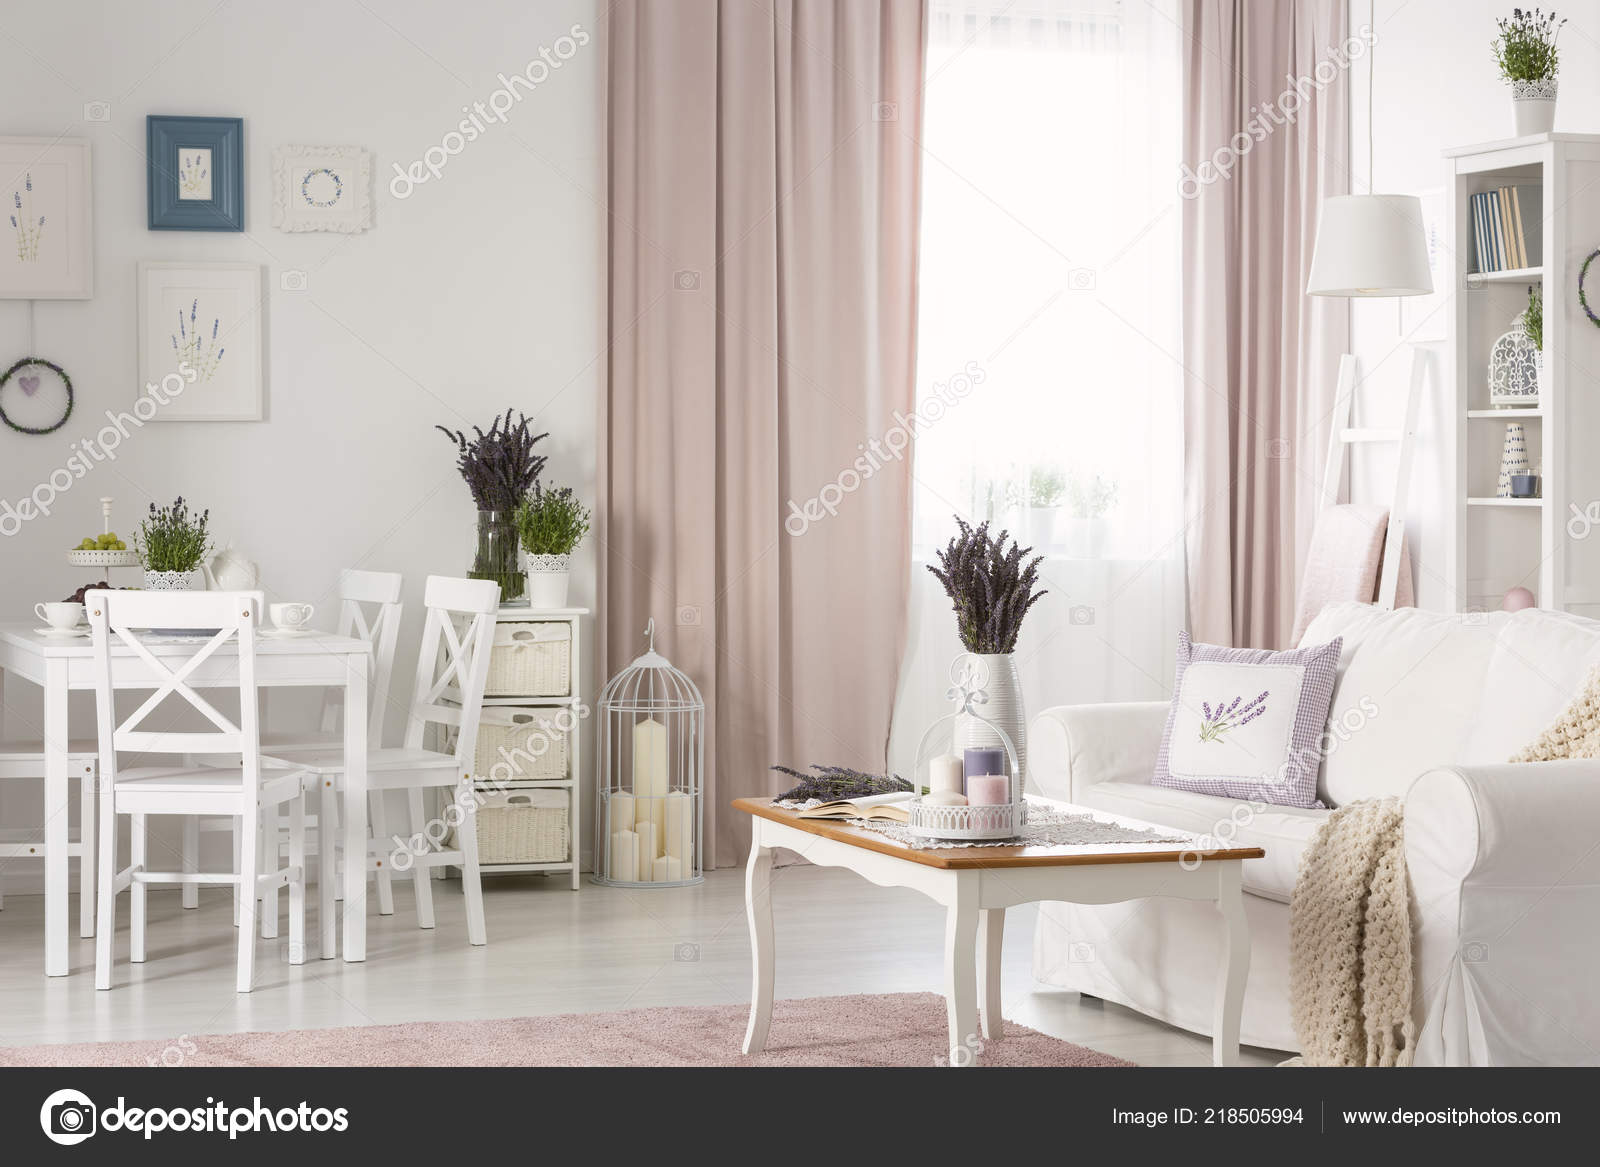 White Chairs Dining Table Posters Flat Interior Pink Drapes Settee Stock Photo C Photographee Eu 218505994